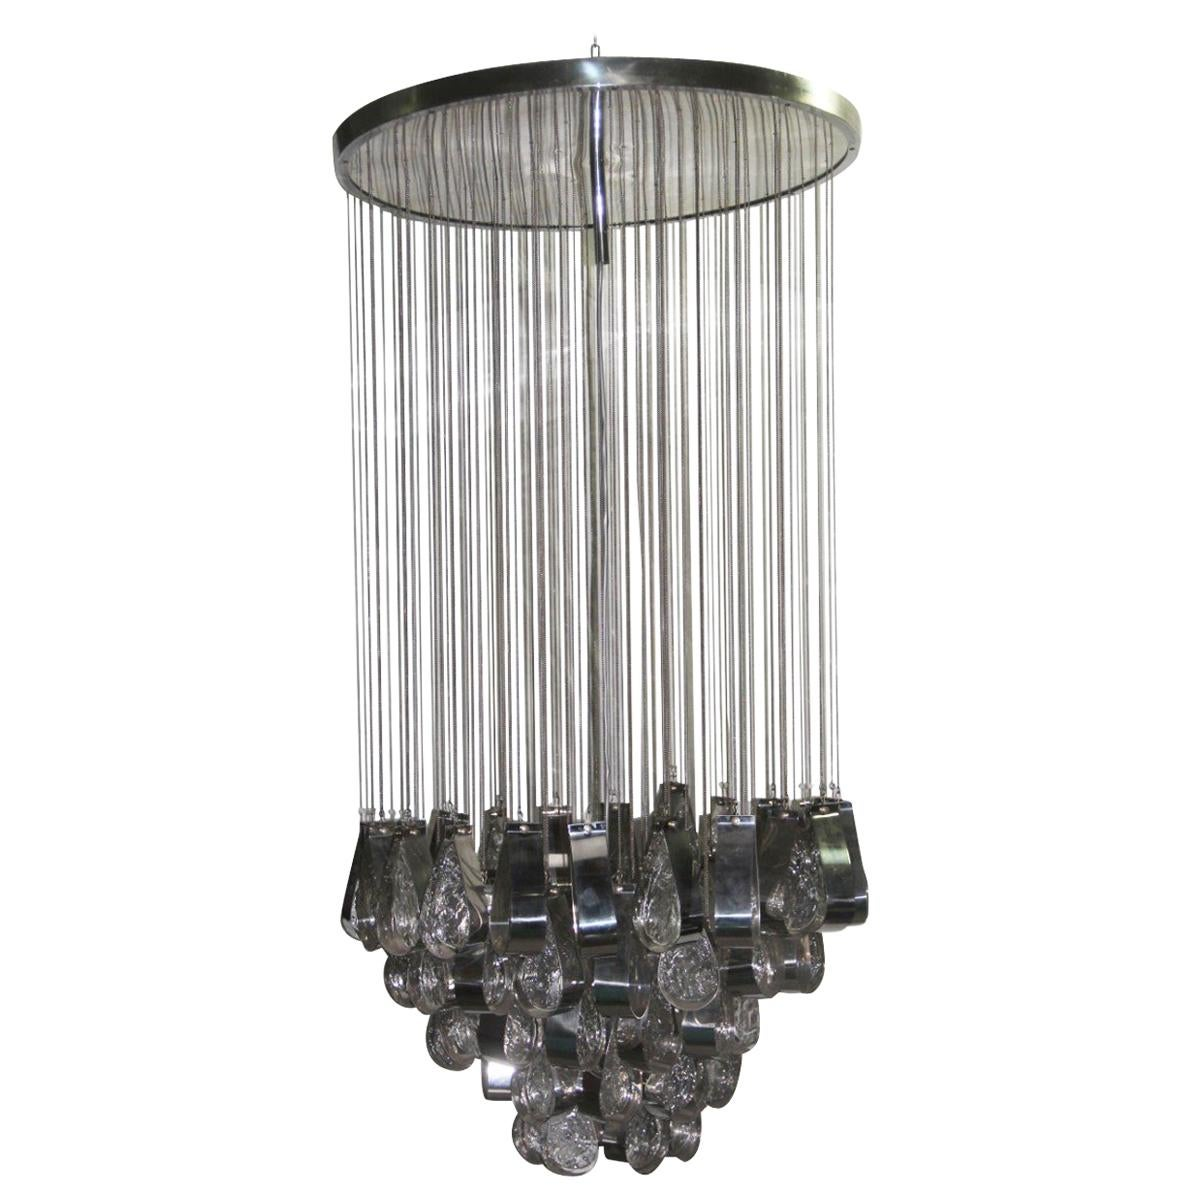 Round Chandelier Waterfall  Drops Steel Glass with Chains Murano Glass, Italy